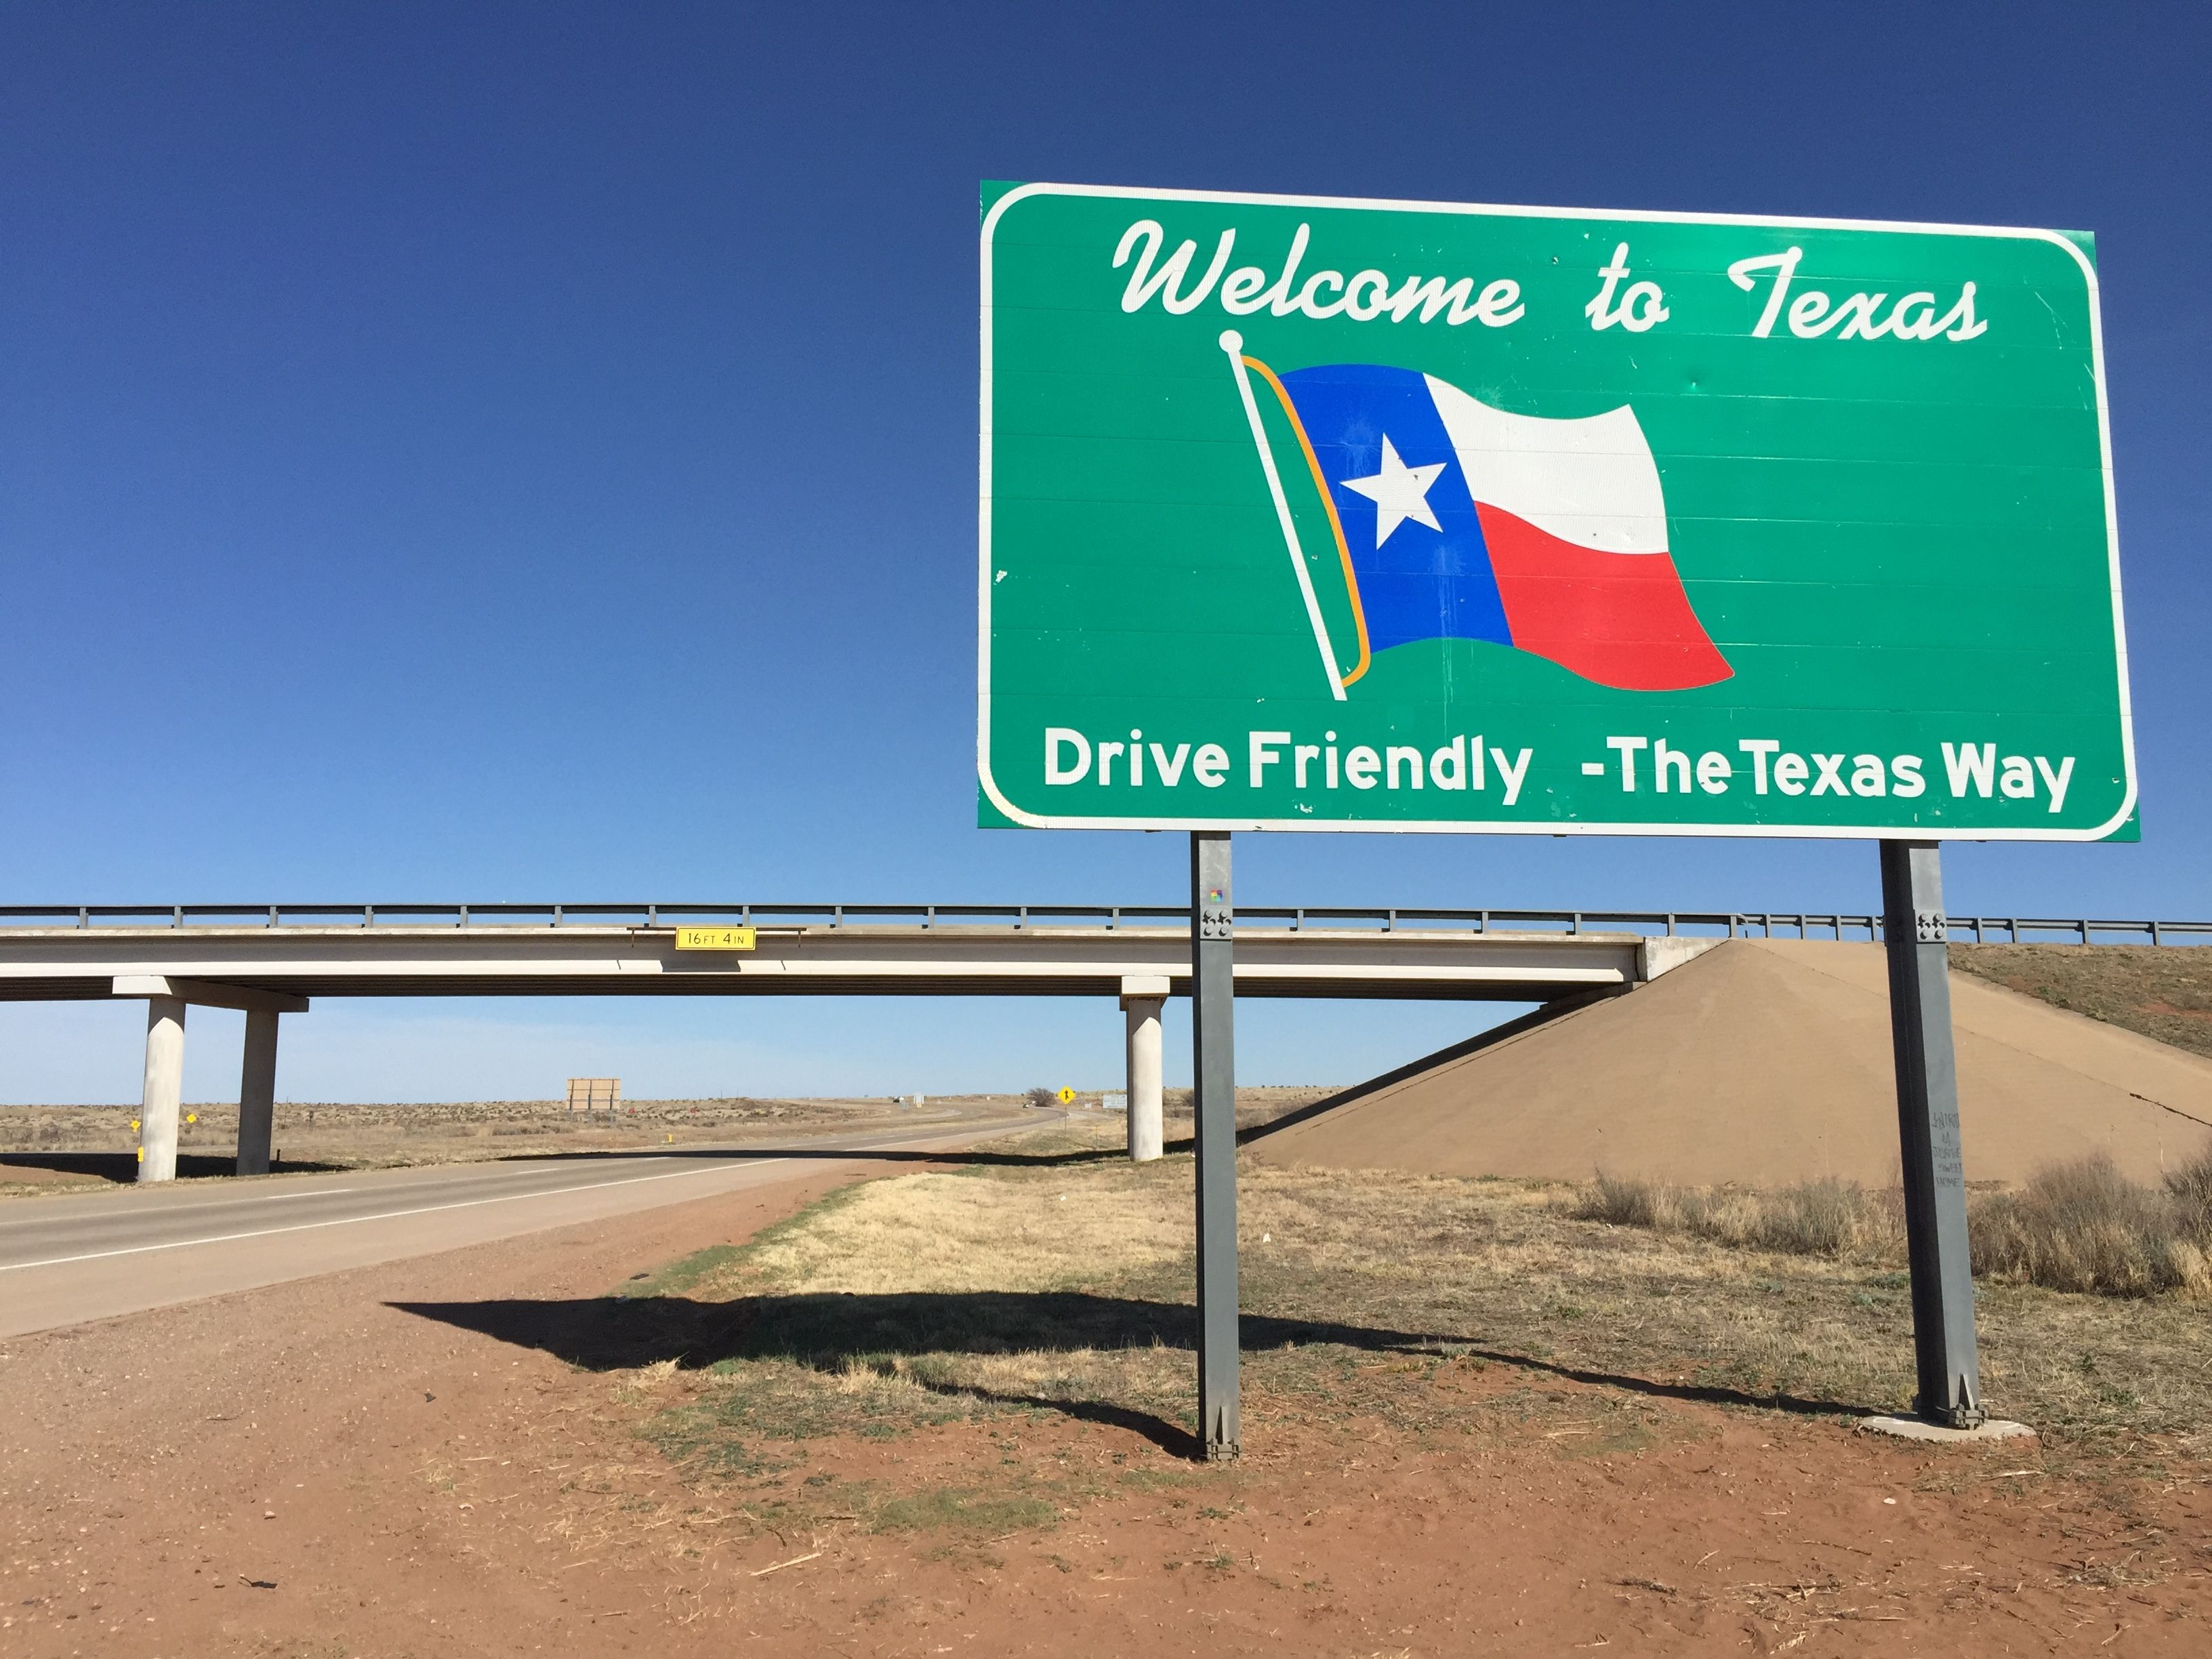 Onthisday In 1845 Texas Enters The Union Six Months After The Congress Of The Republic Of Texas Accepts U S Annexation Of The Territory Texas Is Admitted I